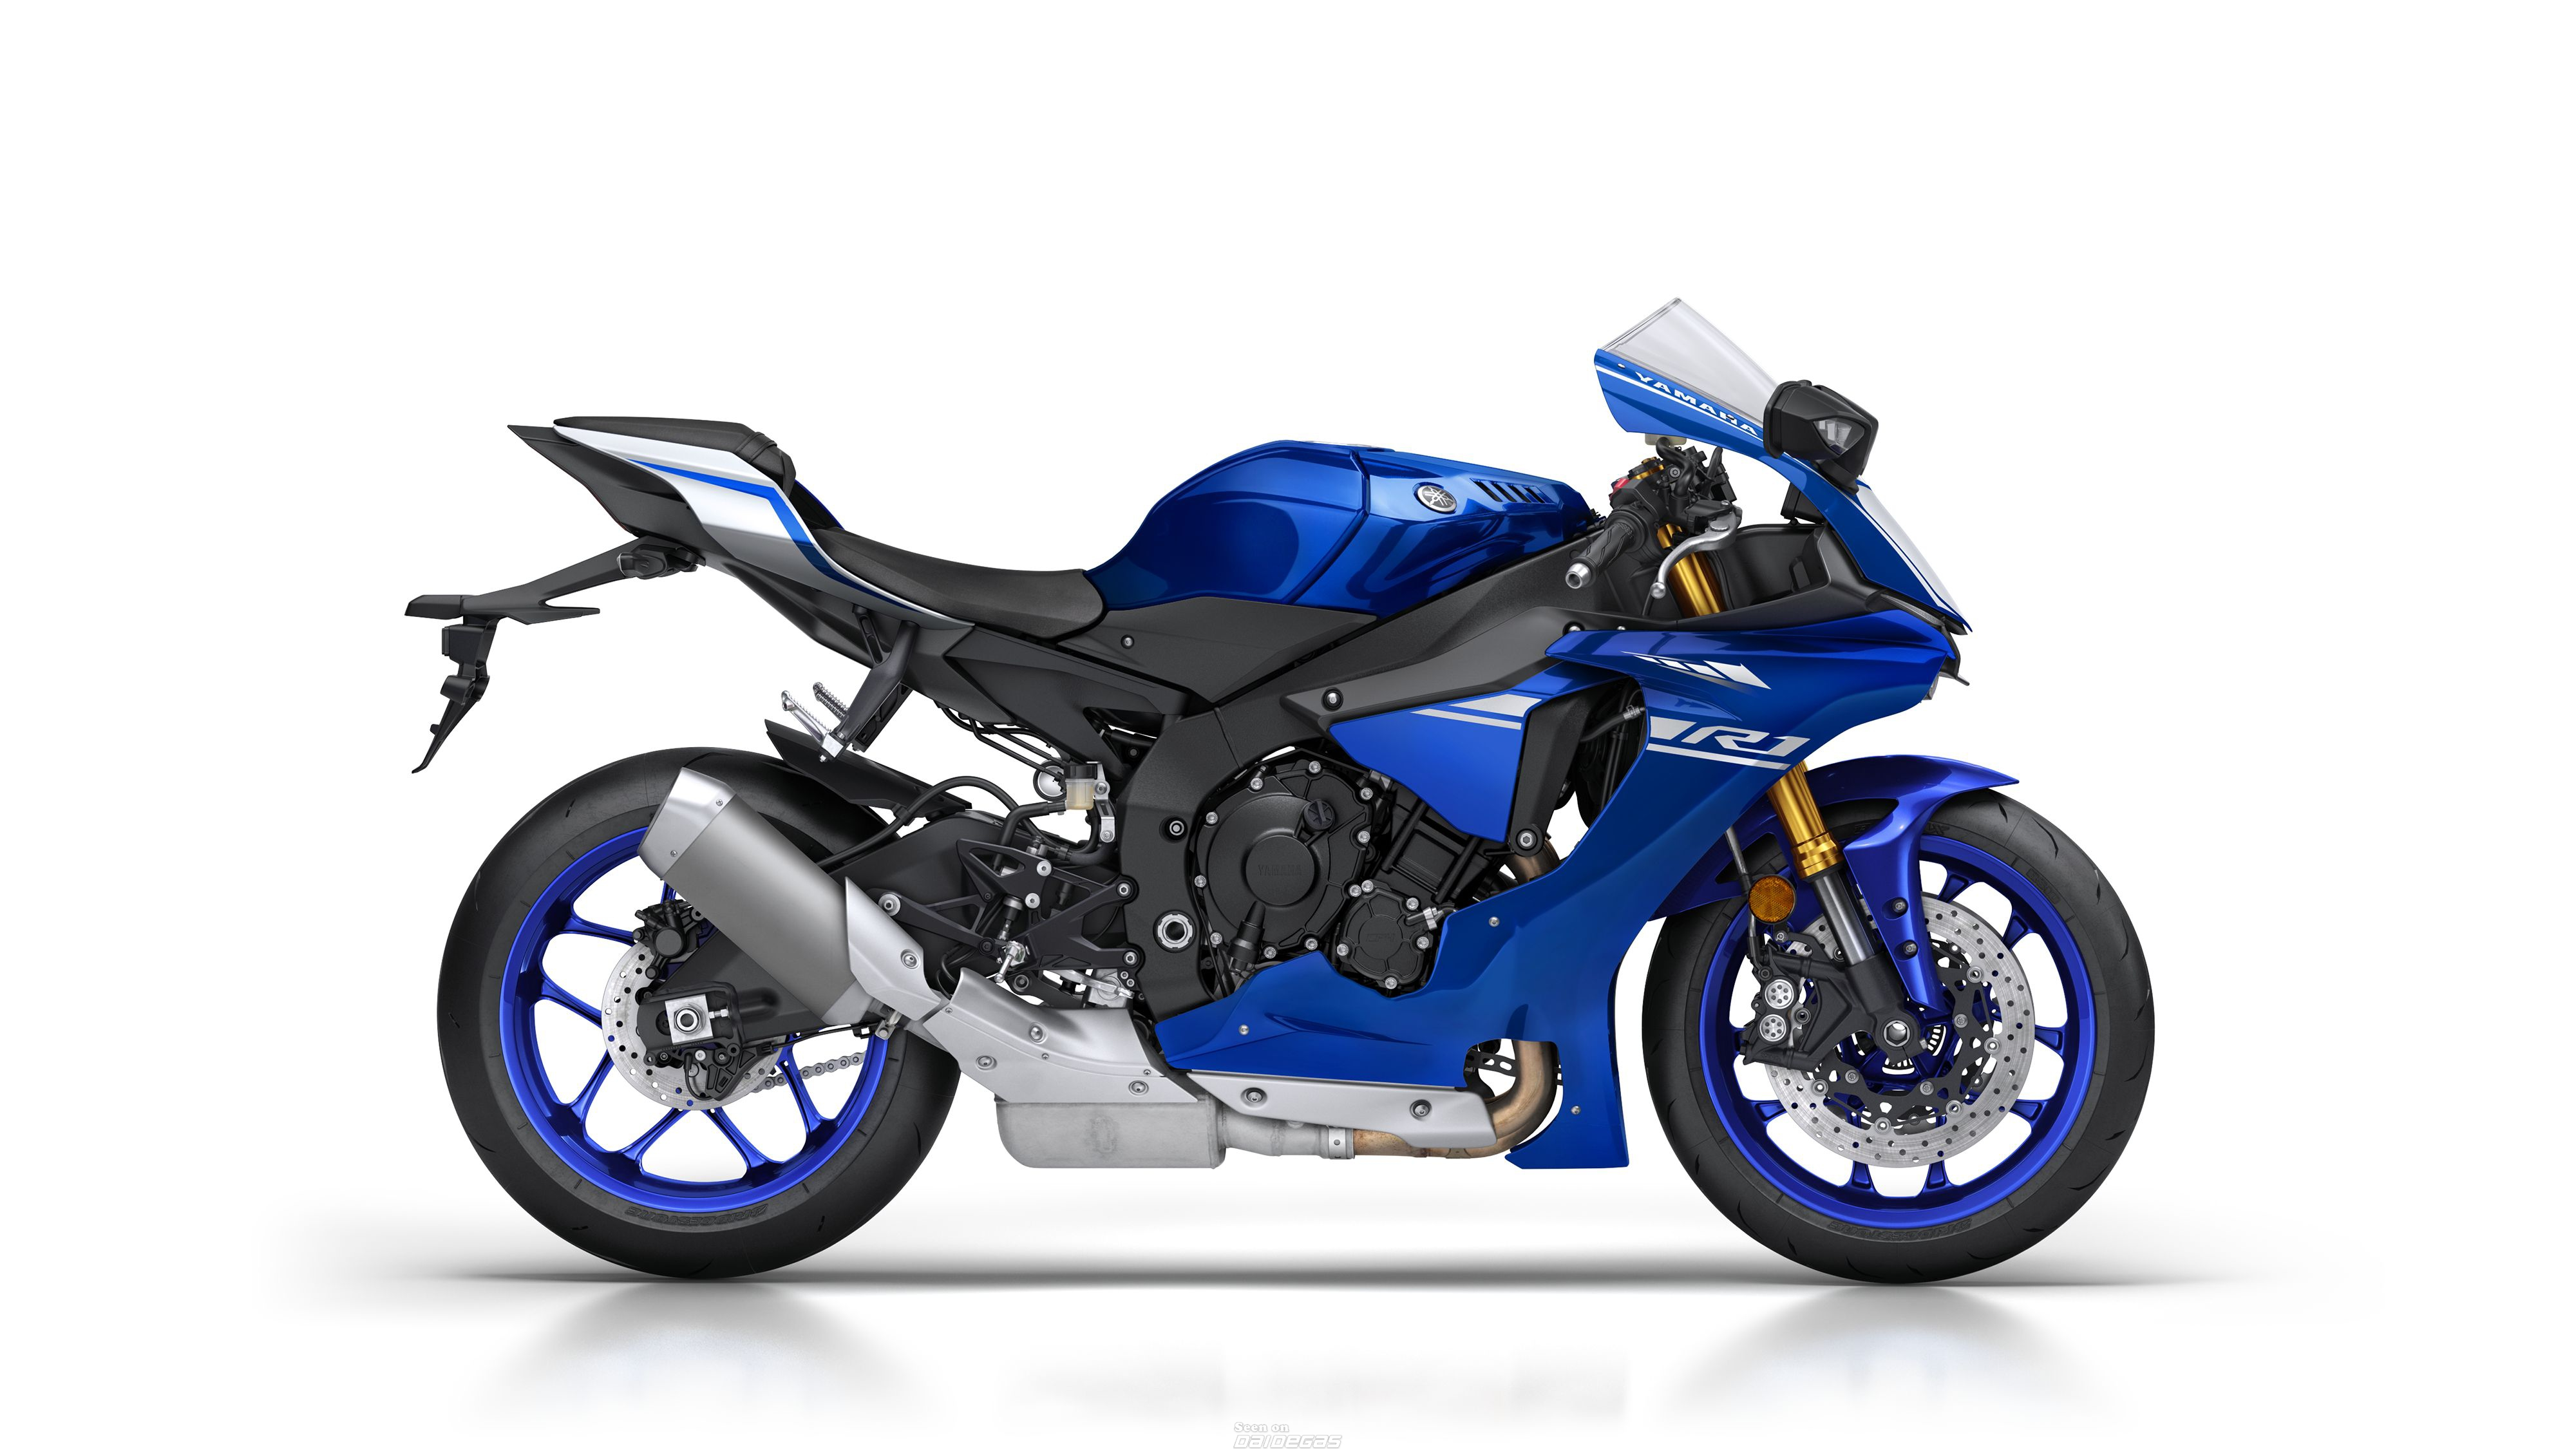 2017 YZF-R1 Yamaha SuperSport Motorcycle Review Price